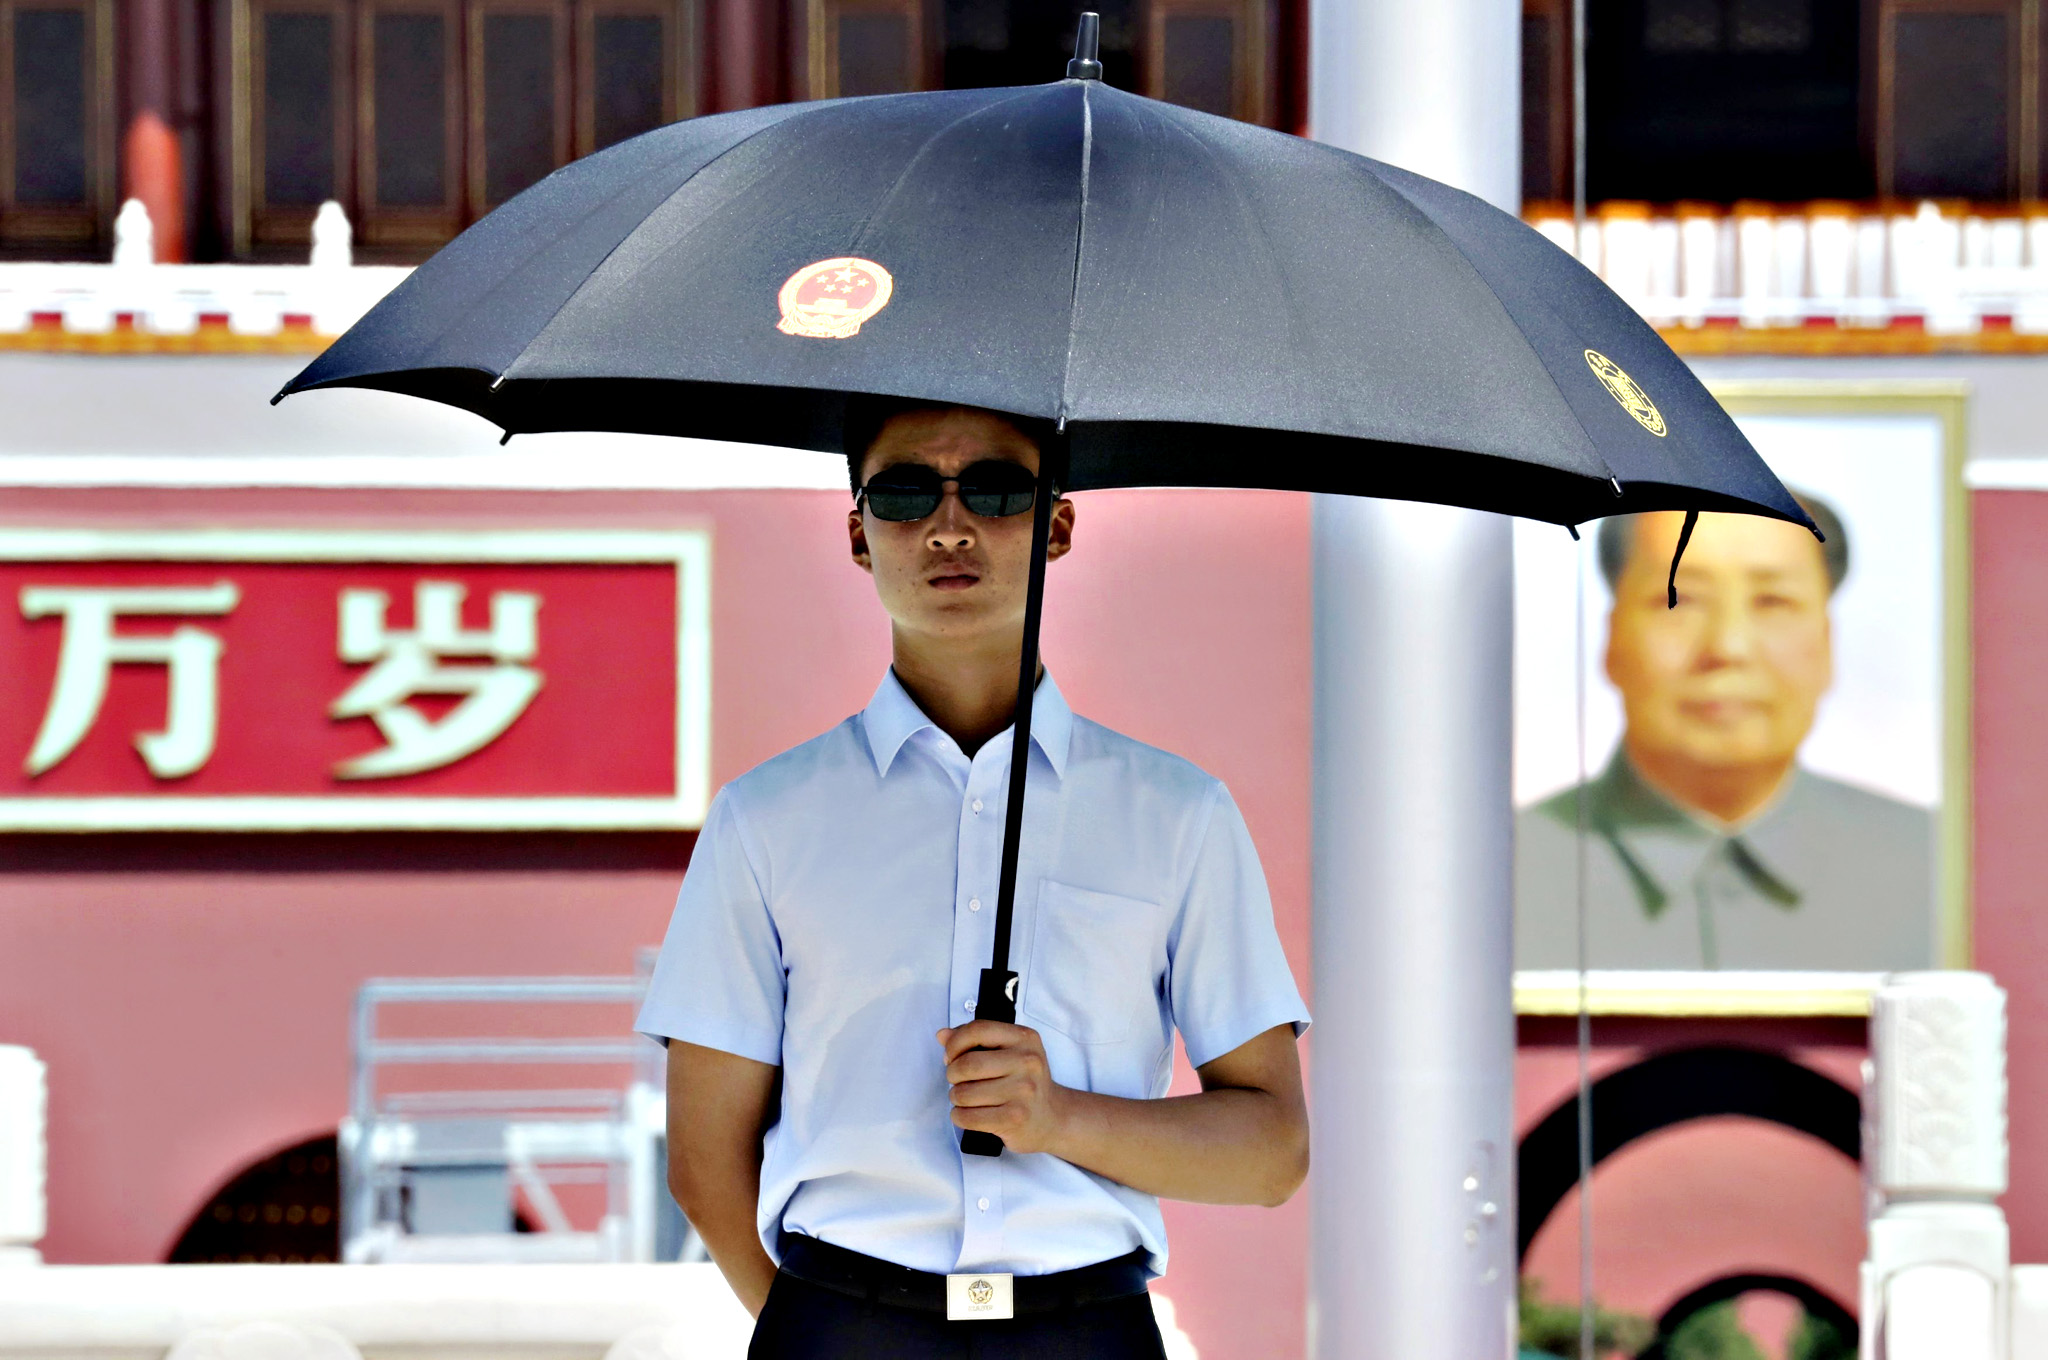 A paramilitary police officer in plain-clothes holding an umbrella keeps watch on Beijing's Tiananmen Square, on Thursday. Major Western leaders will not attend a military parade in China next week to mark the end of World War Two, leaving President Xi Jinping to stand with leaders and officials from Russia, Sudan, Venezuela and North Korea at his highest-profile event of 2015